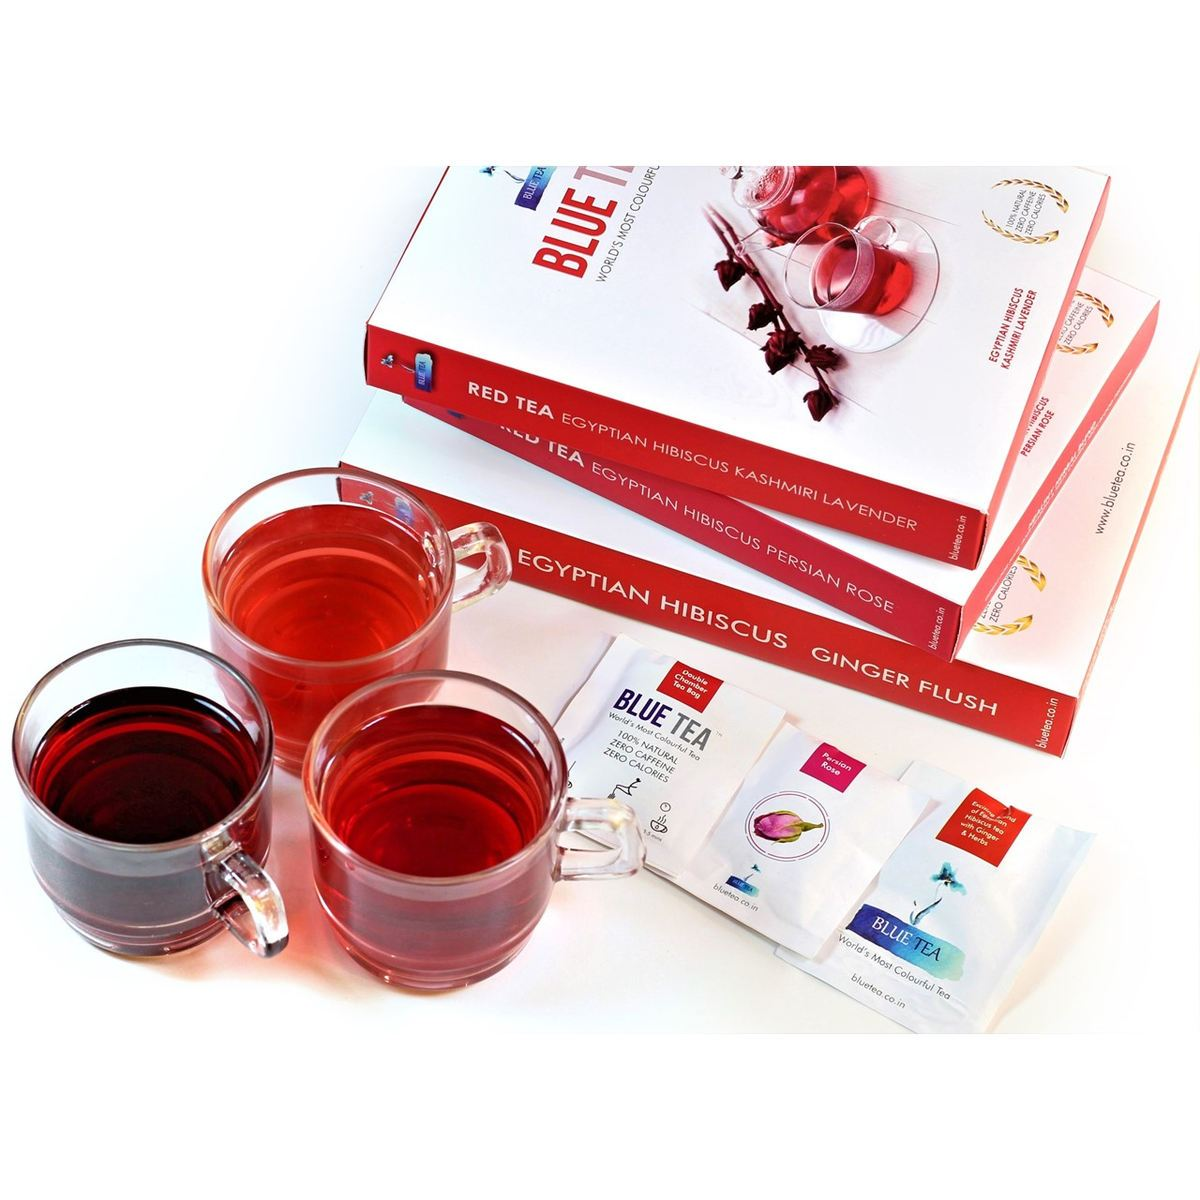 Blood Sugar Control Tea For Diabetics | 3 Varieties | 12 Sachets - 24 Cups | Hibiscus Tea | Caffeine Free Herbal Tea